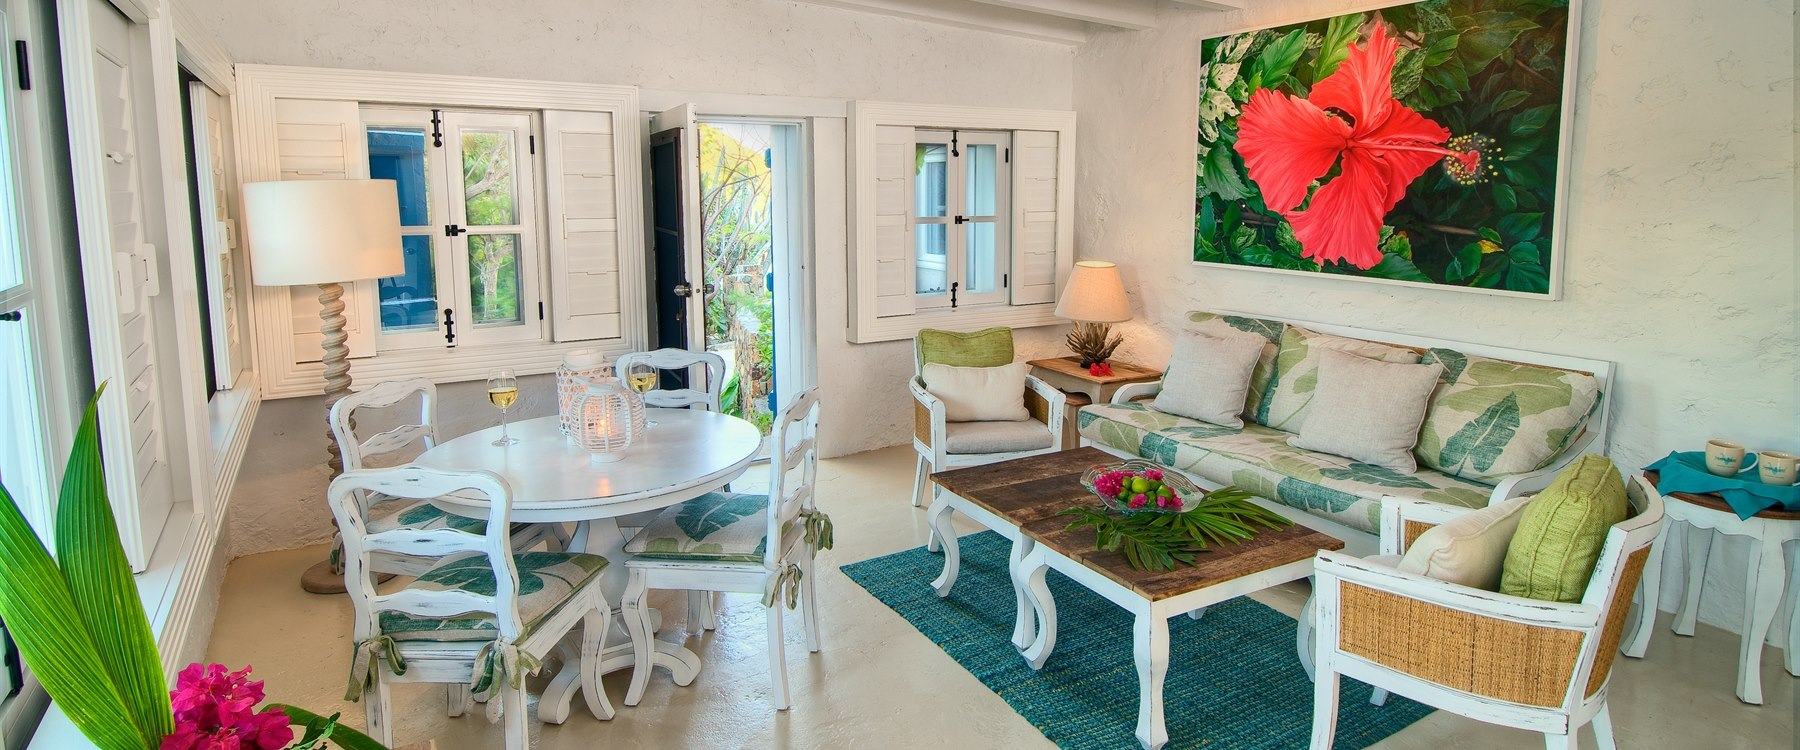 Living room area in 3 Bedroom Villa at Guana Island, British Virgin Islands